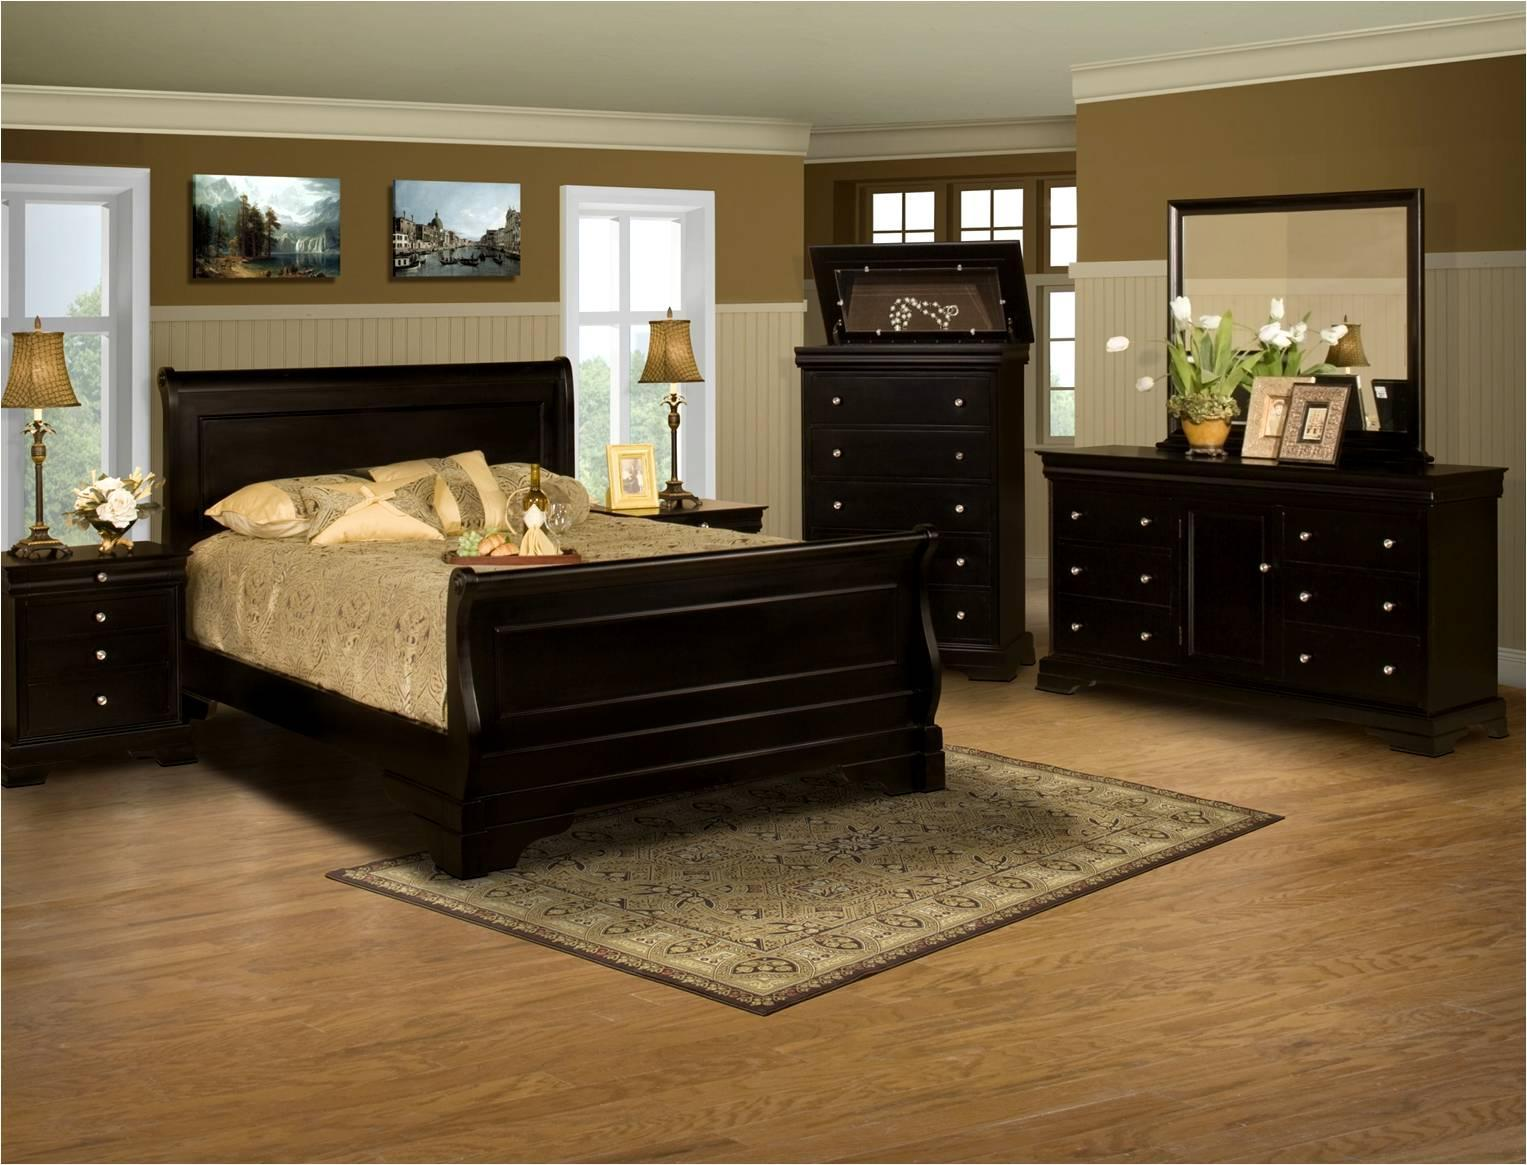 New Classic Belle Rose 4 Piece Bedroom Group - Item Number: 00-013 K 4 Piece